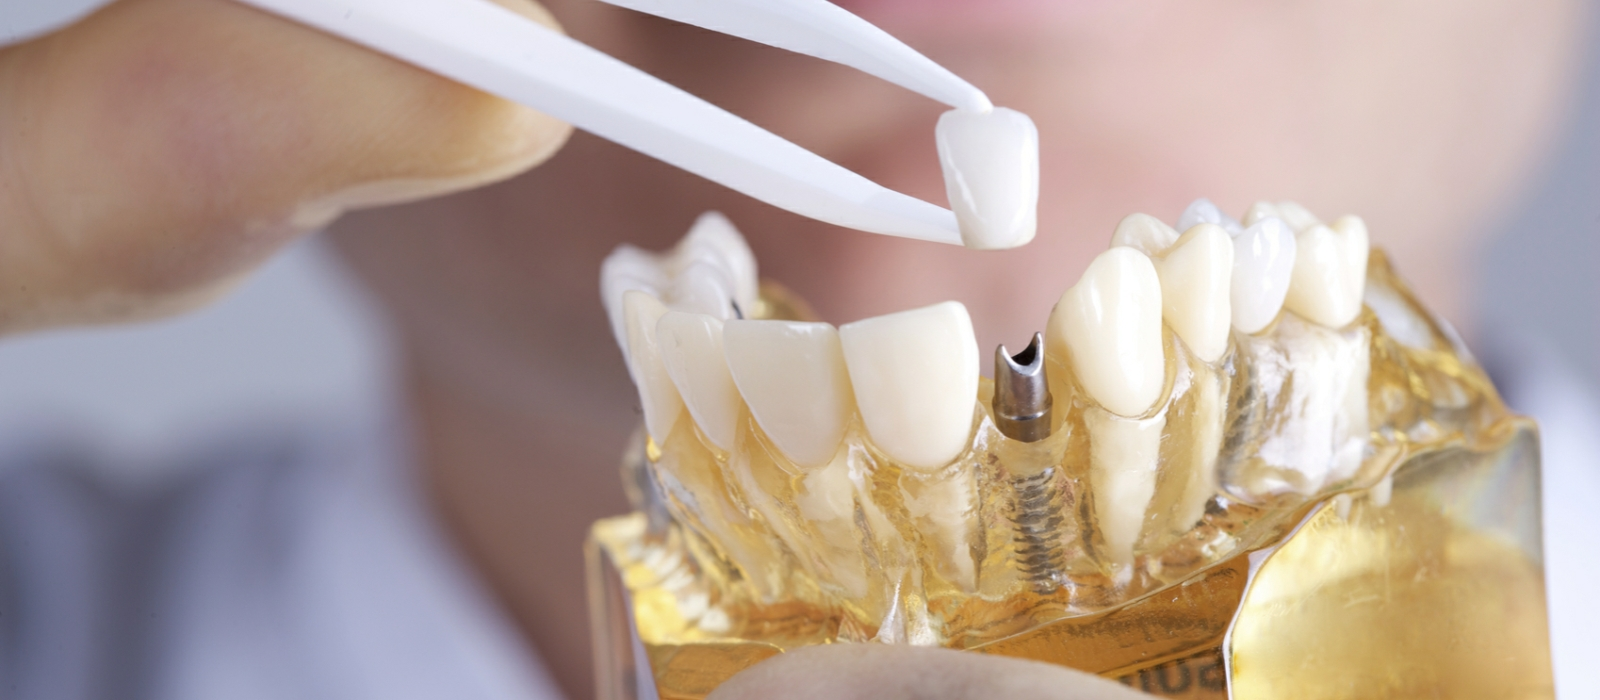 Dental Implants Columbia SC